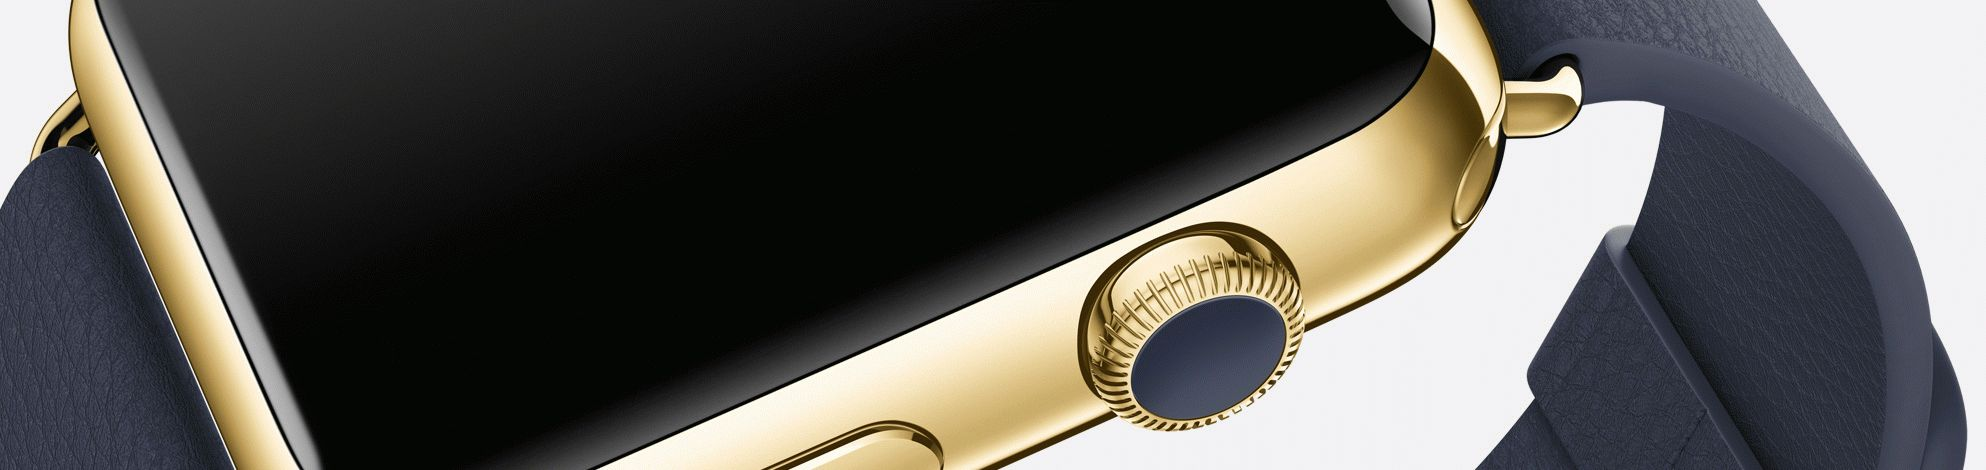 Apple-Watch-yellow_gold_blue_detail_large